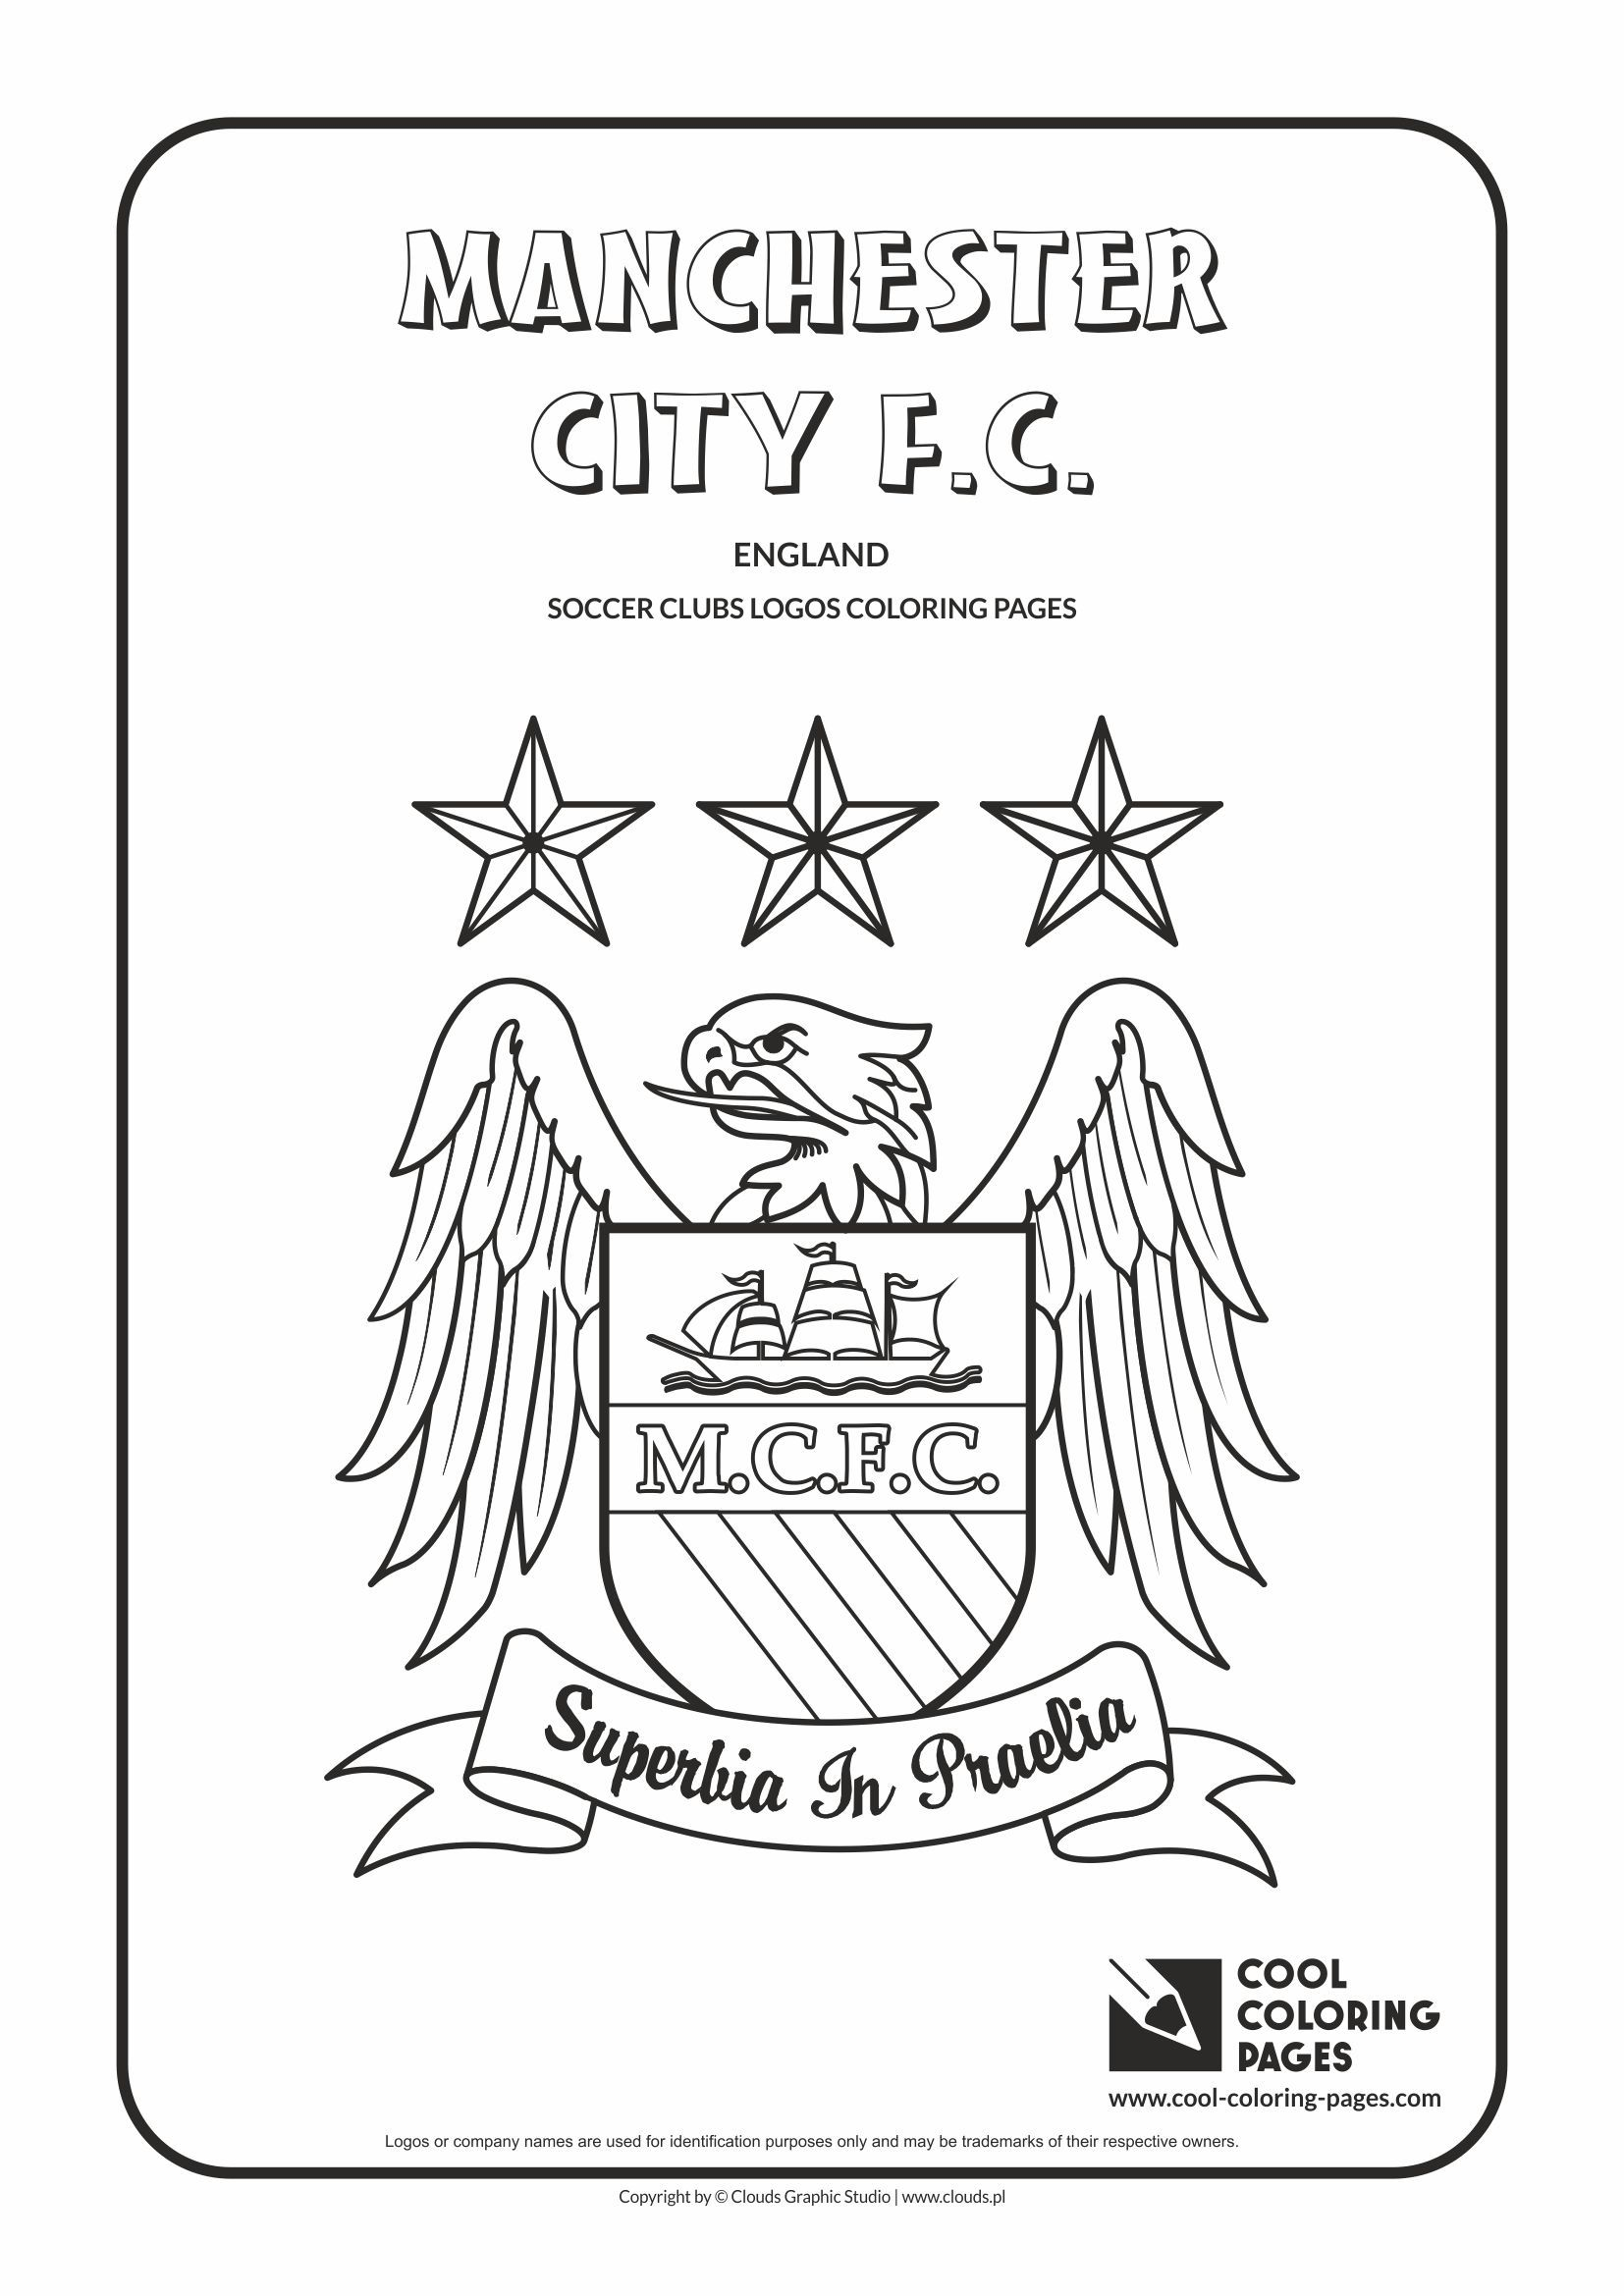 cool coloring pages soccer clubs logos manchester city fc logo coloring page with